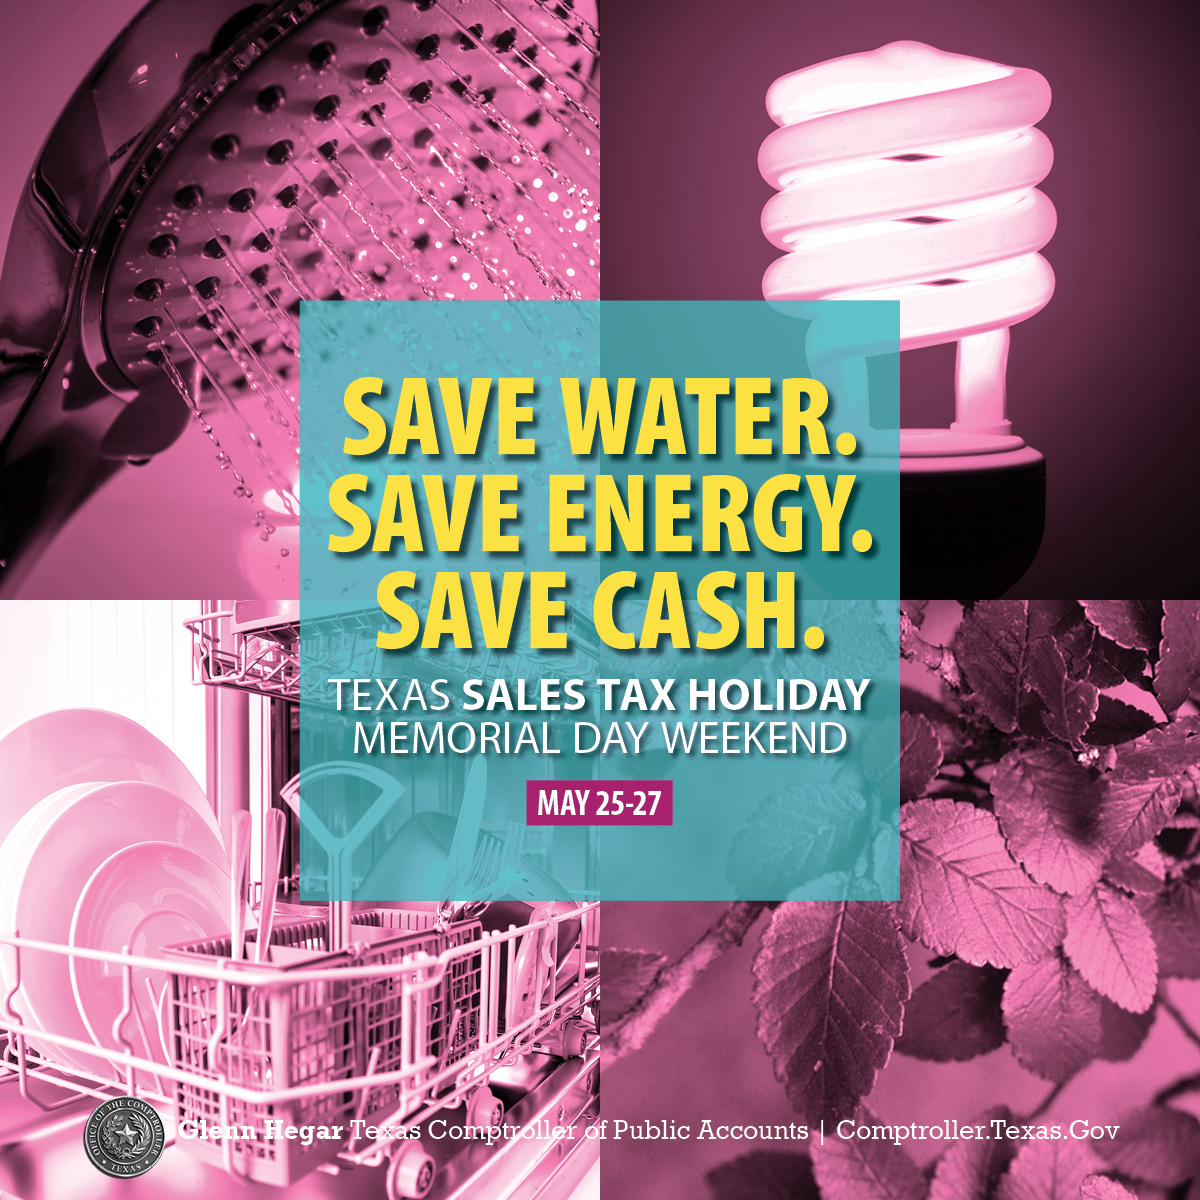 Save Water. Save Energy. Save Cash. Texas Sales Tax Holiday Memorial Day Weekend, May 25 through 27.